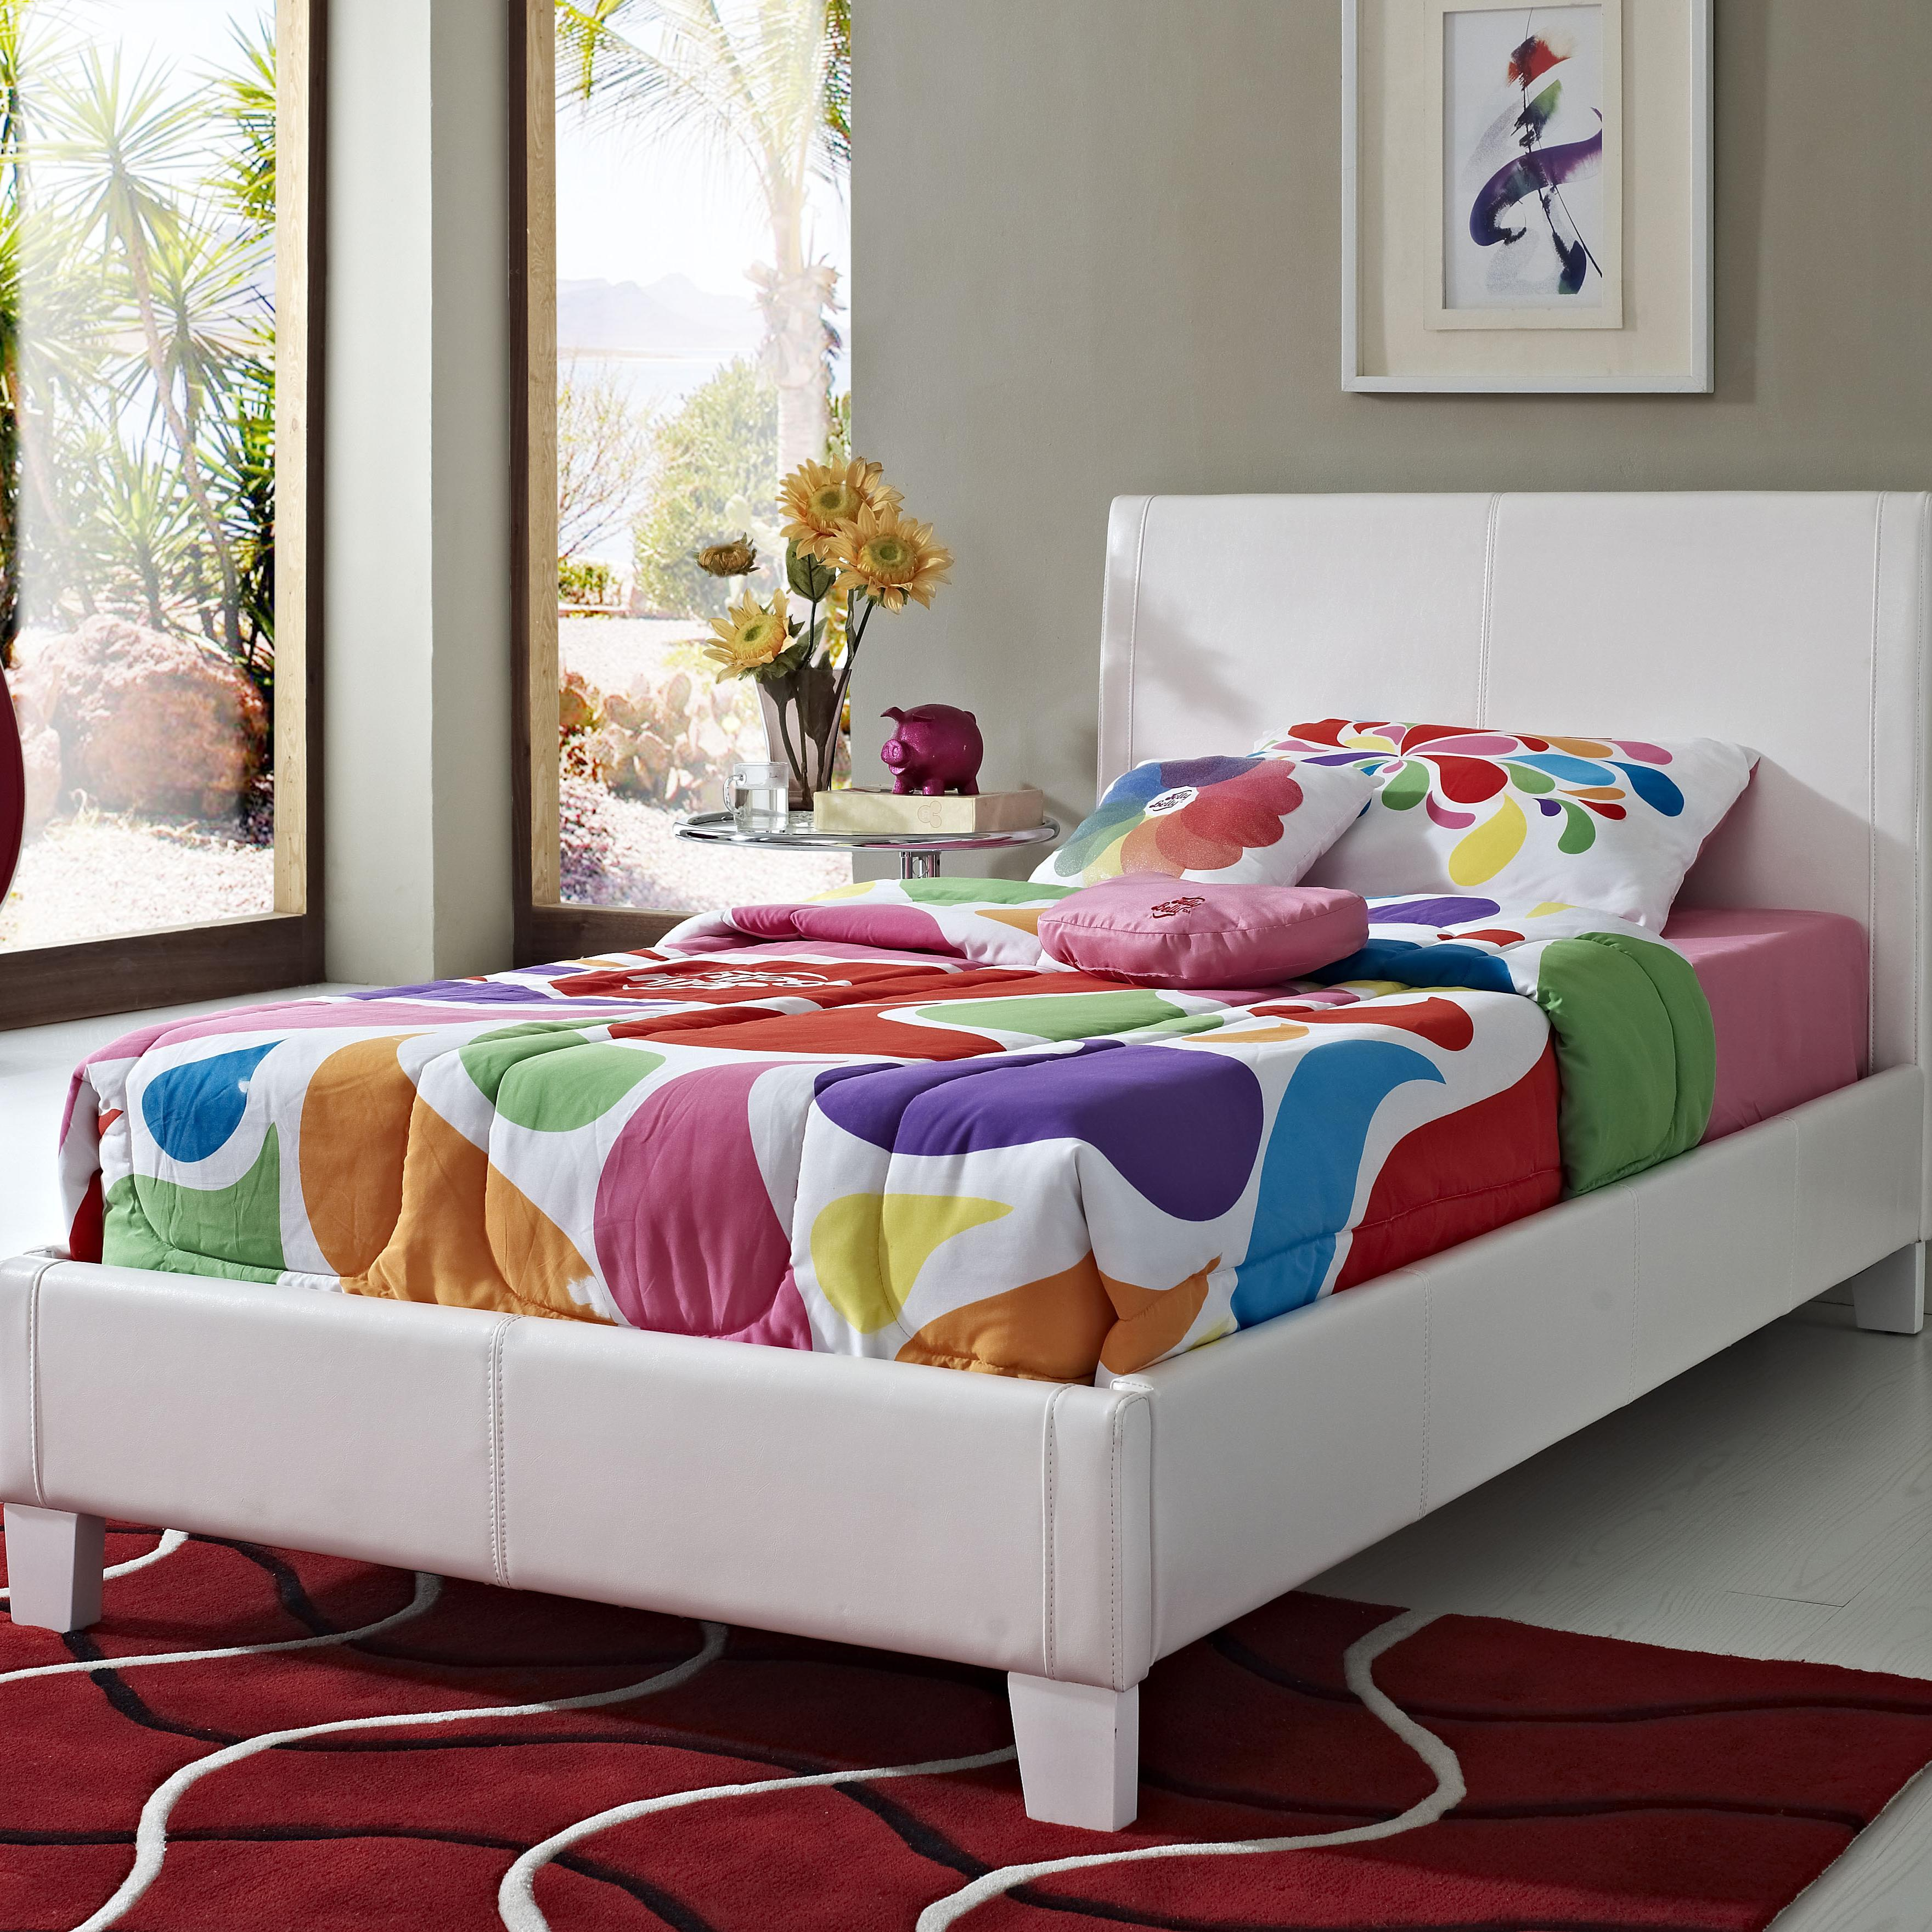 Fantasia Full Upholstered Bed by Standard Furniture at Rooms for Less